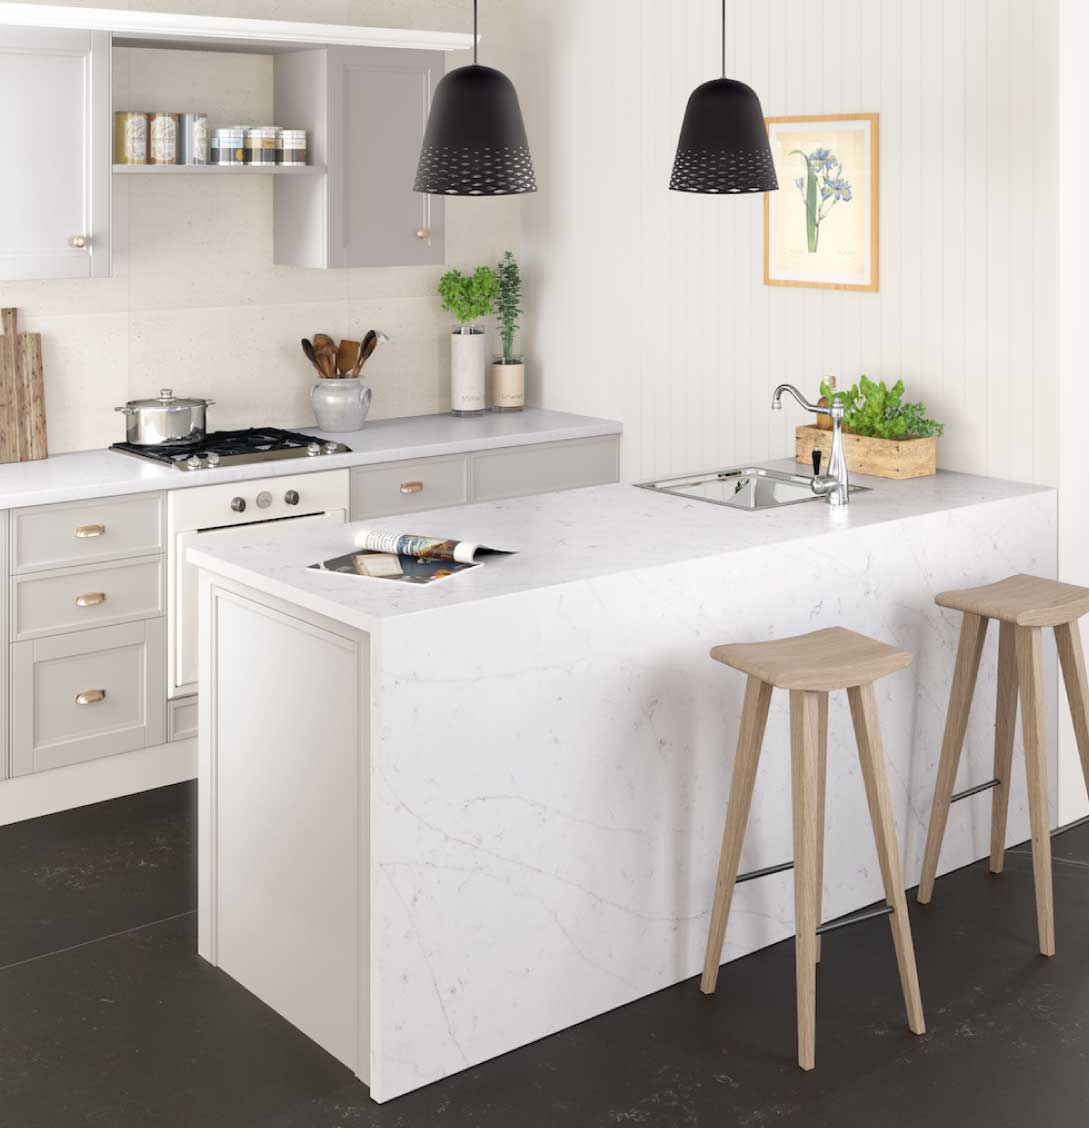 Silestone Statuario quartz countertop kitchen